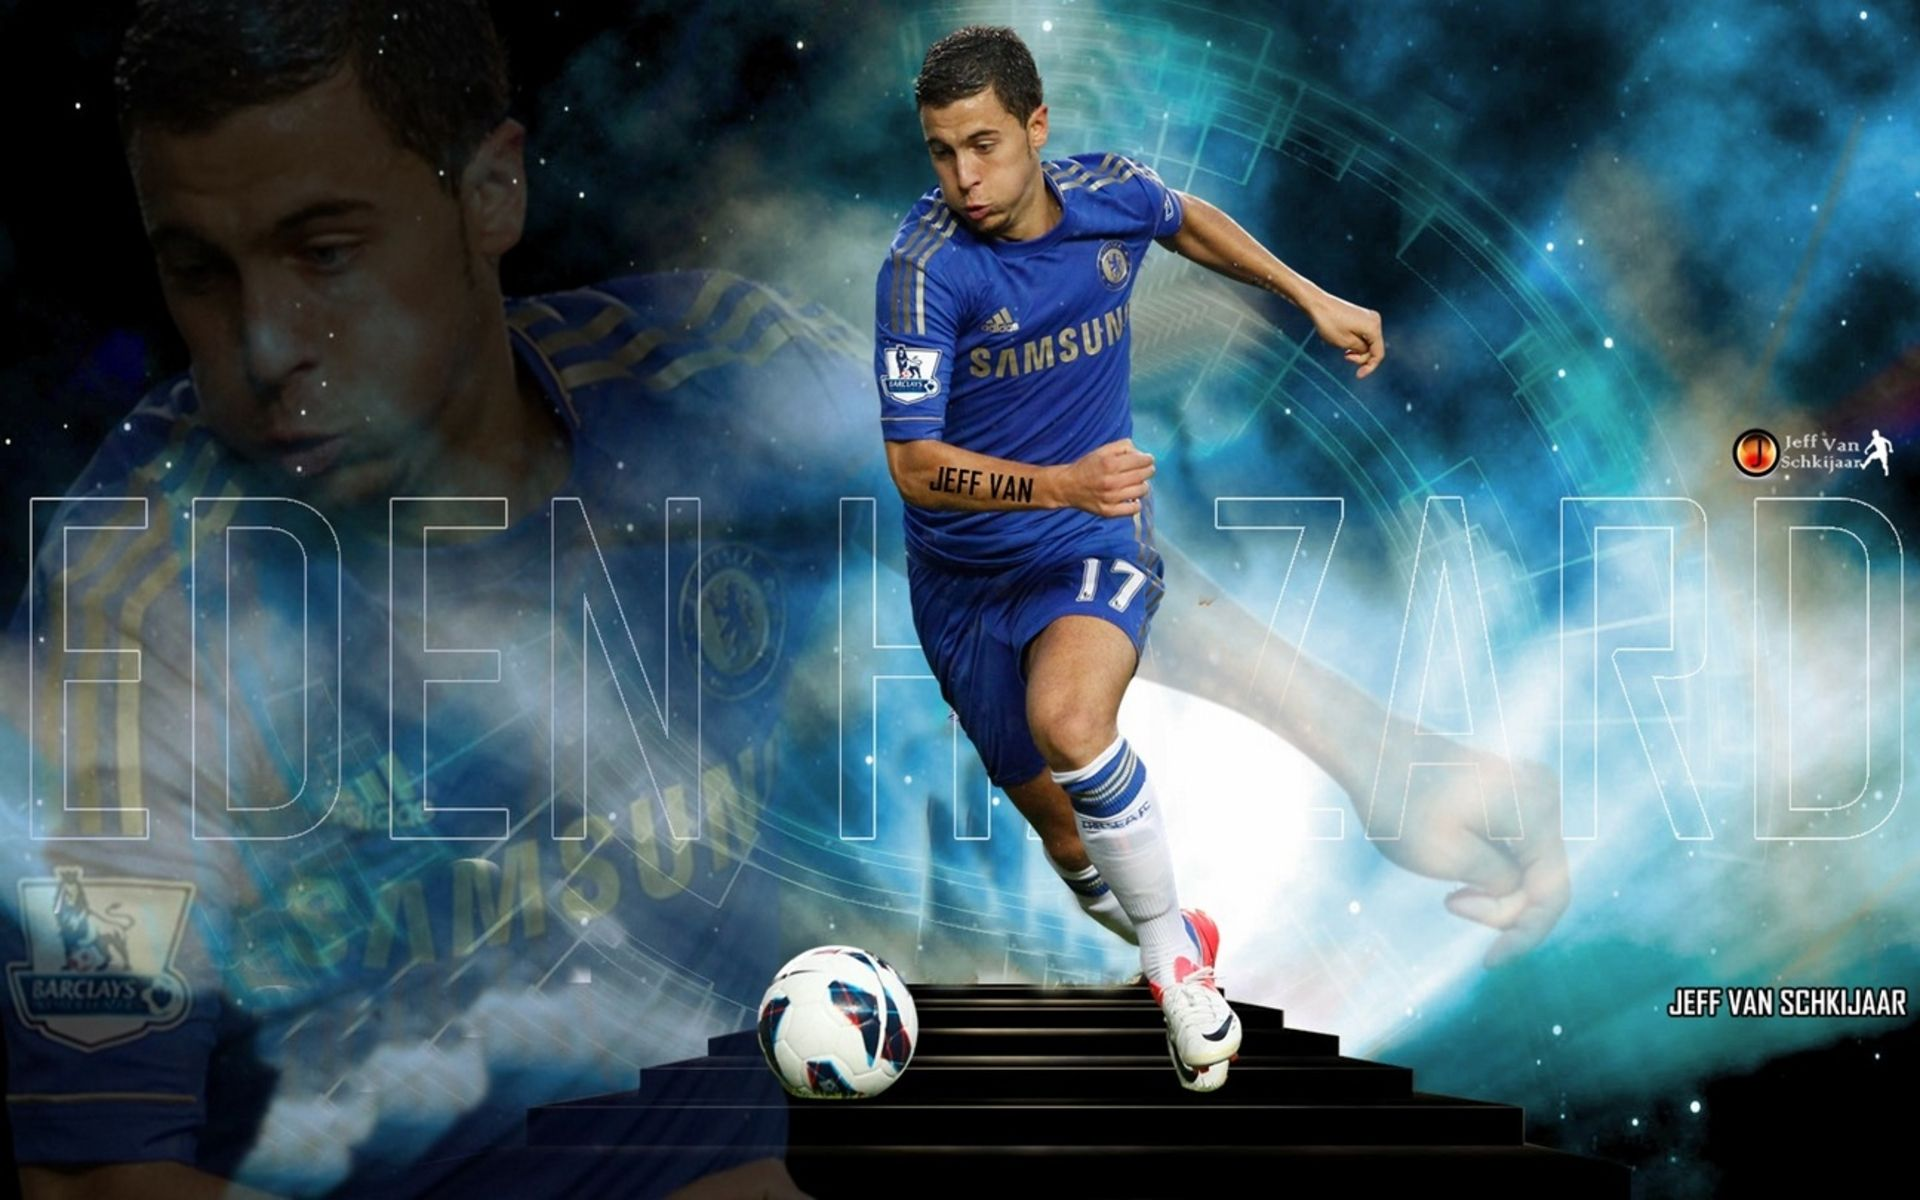 Chelsea Fc Wallpaper, Gallery of 39 Chelsea FC Backgrounds